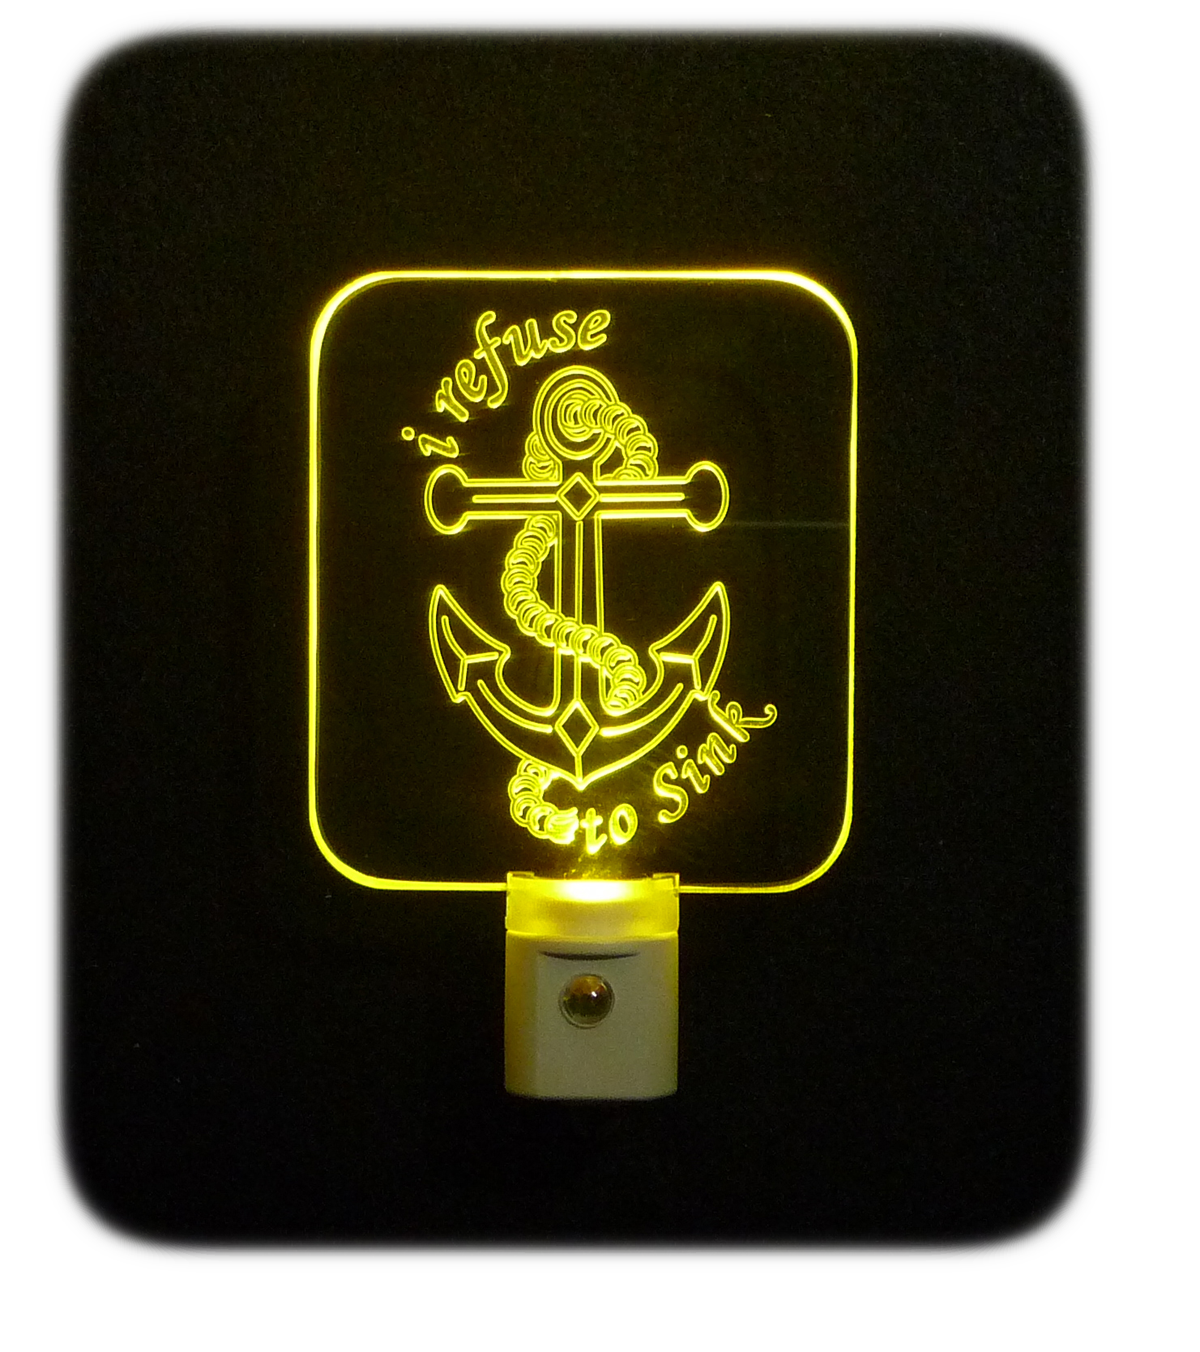 Personalize Anchor Nautical LED Night Light - I refuse to sink